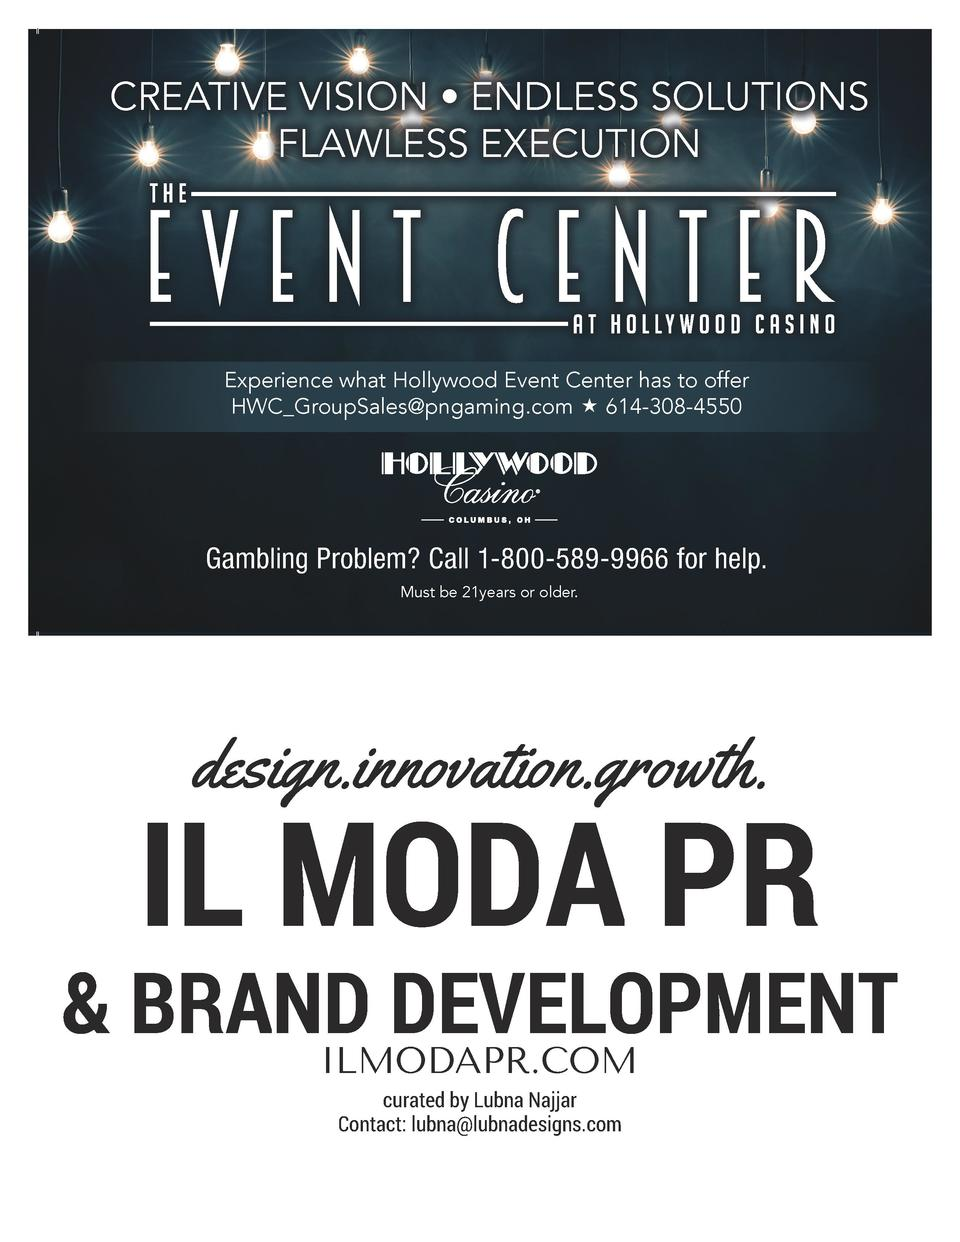 CREATIVE VISION     ENDLESS SOLUTIONS FLAWLESS EXECUTION  Experience what Hollywood Event Center has to offer HWC_GroupSal...